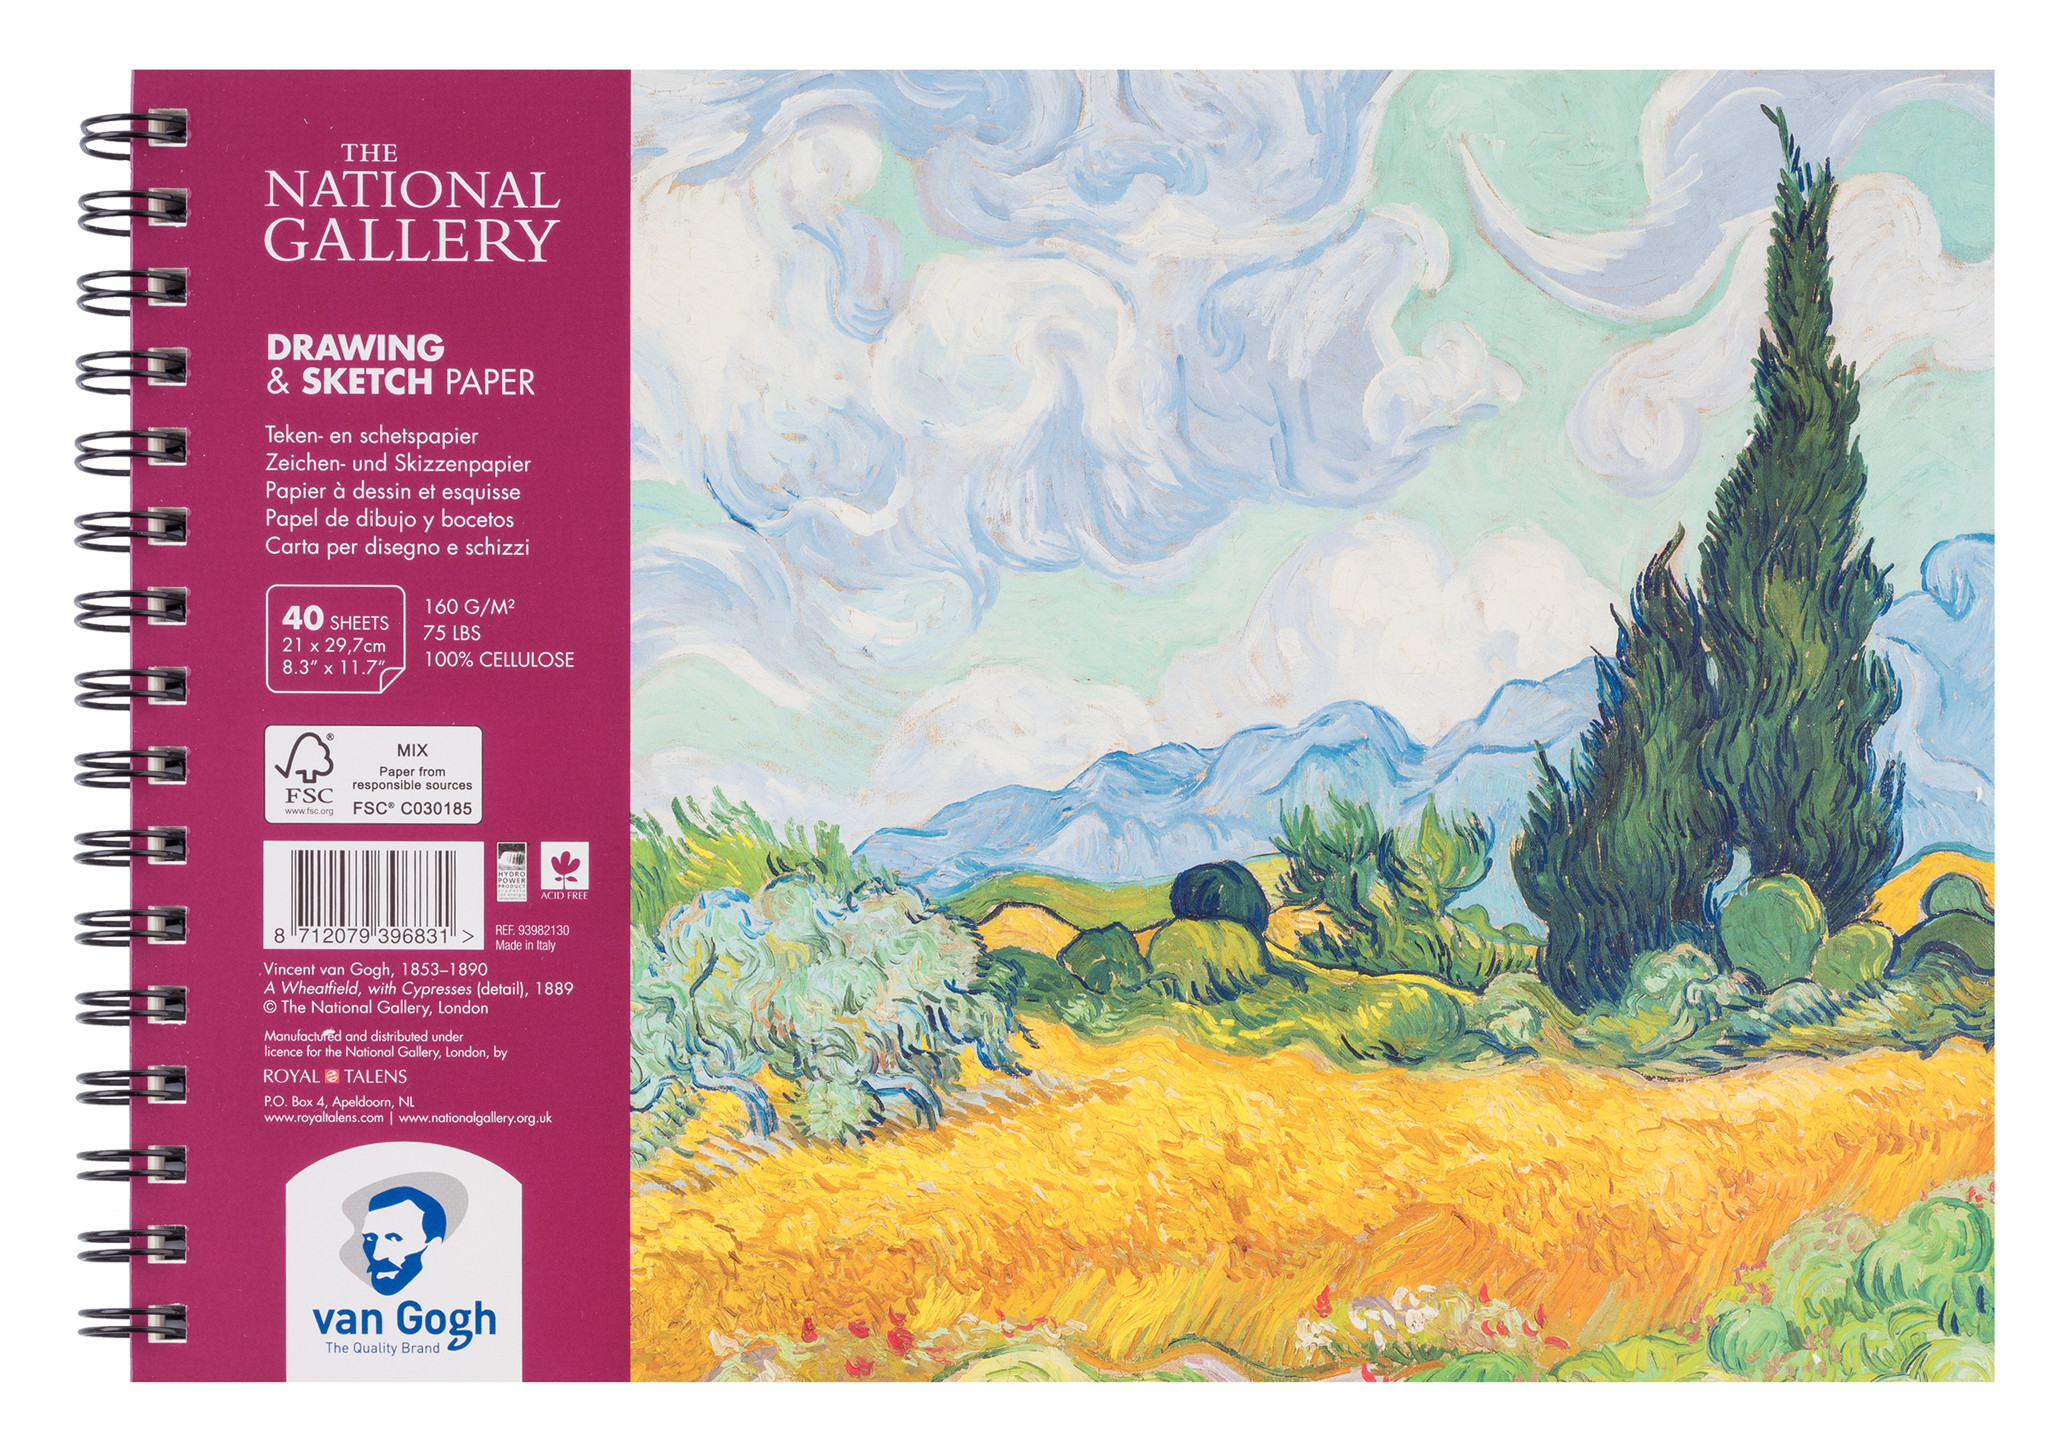 Van Gogh The National Gallery Drawing & Sketch Paper Spiral Bound Pad, 40 Sheets, 160g/75lb., size 29.7 x 21cm (A4) / 8.3 x 11.7